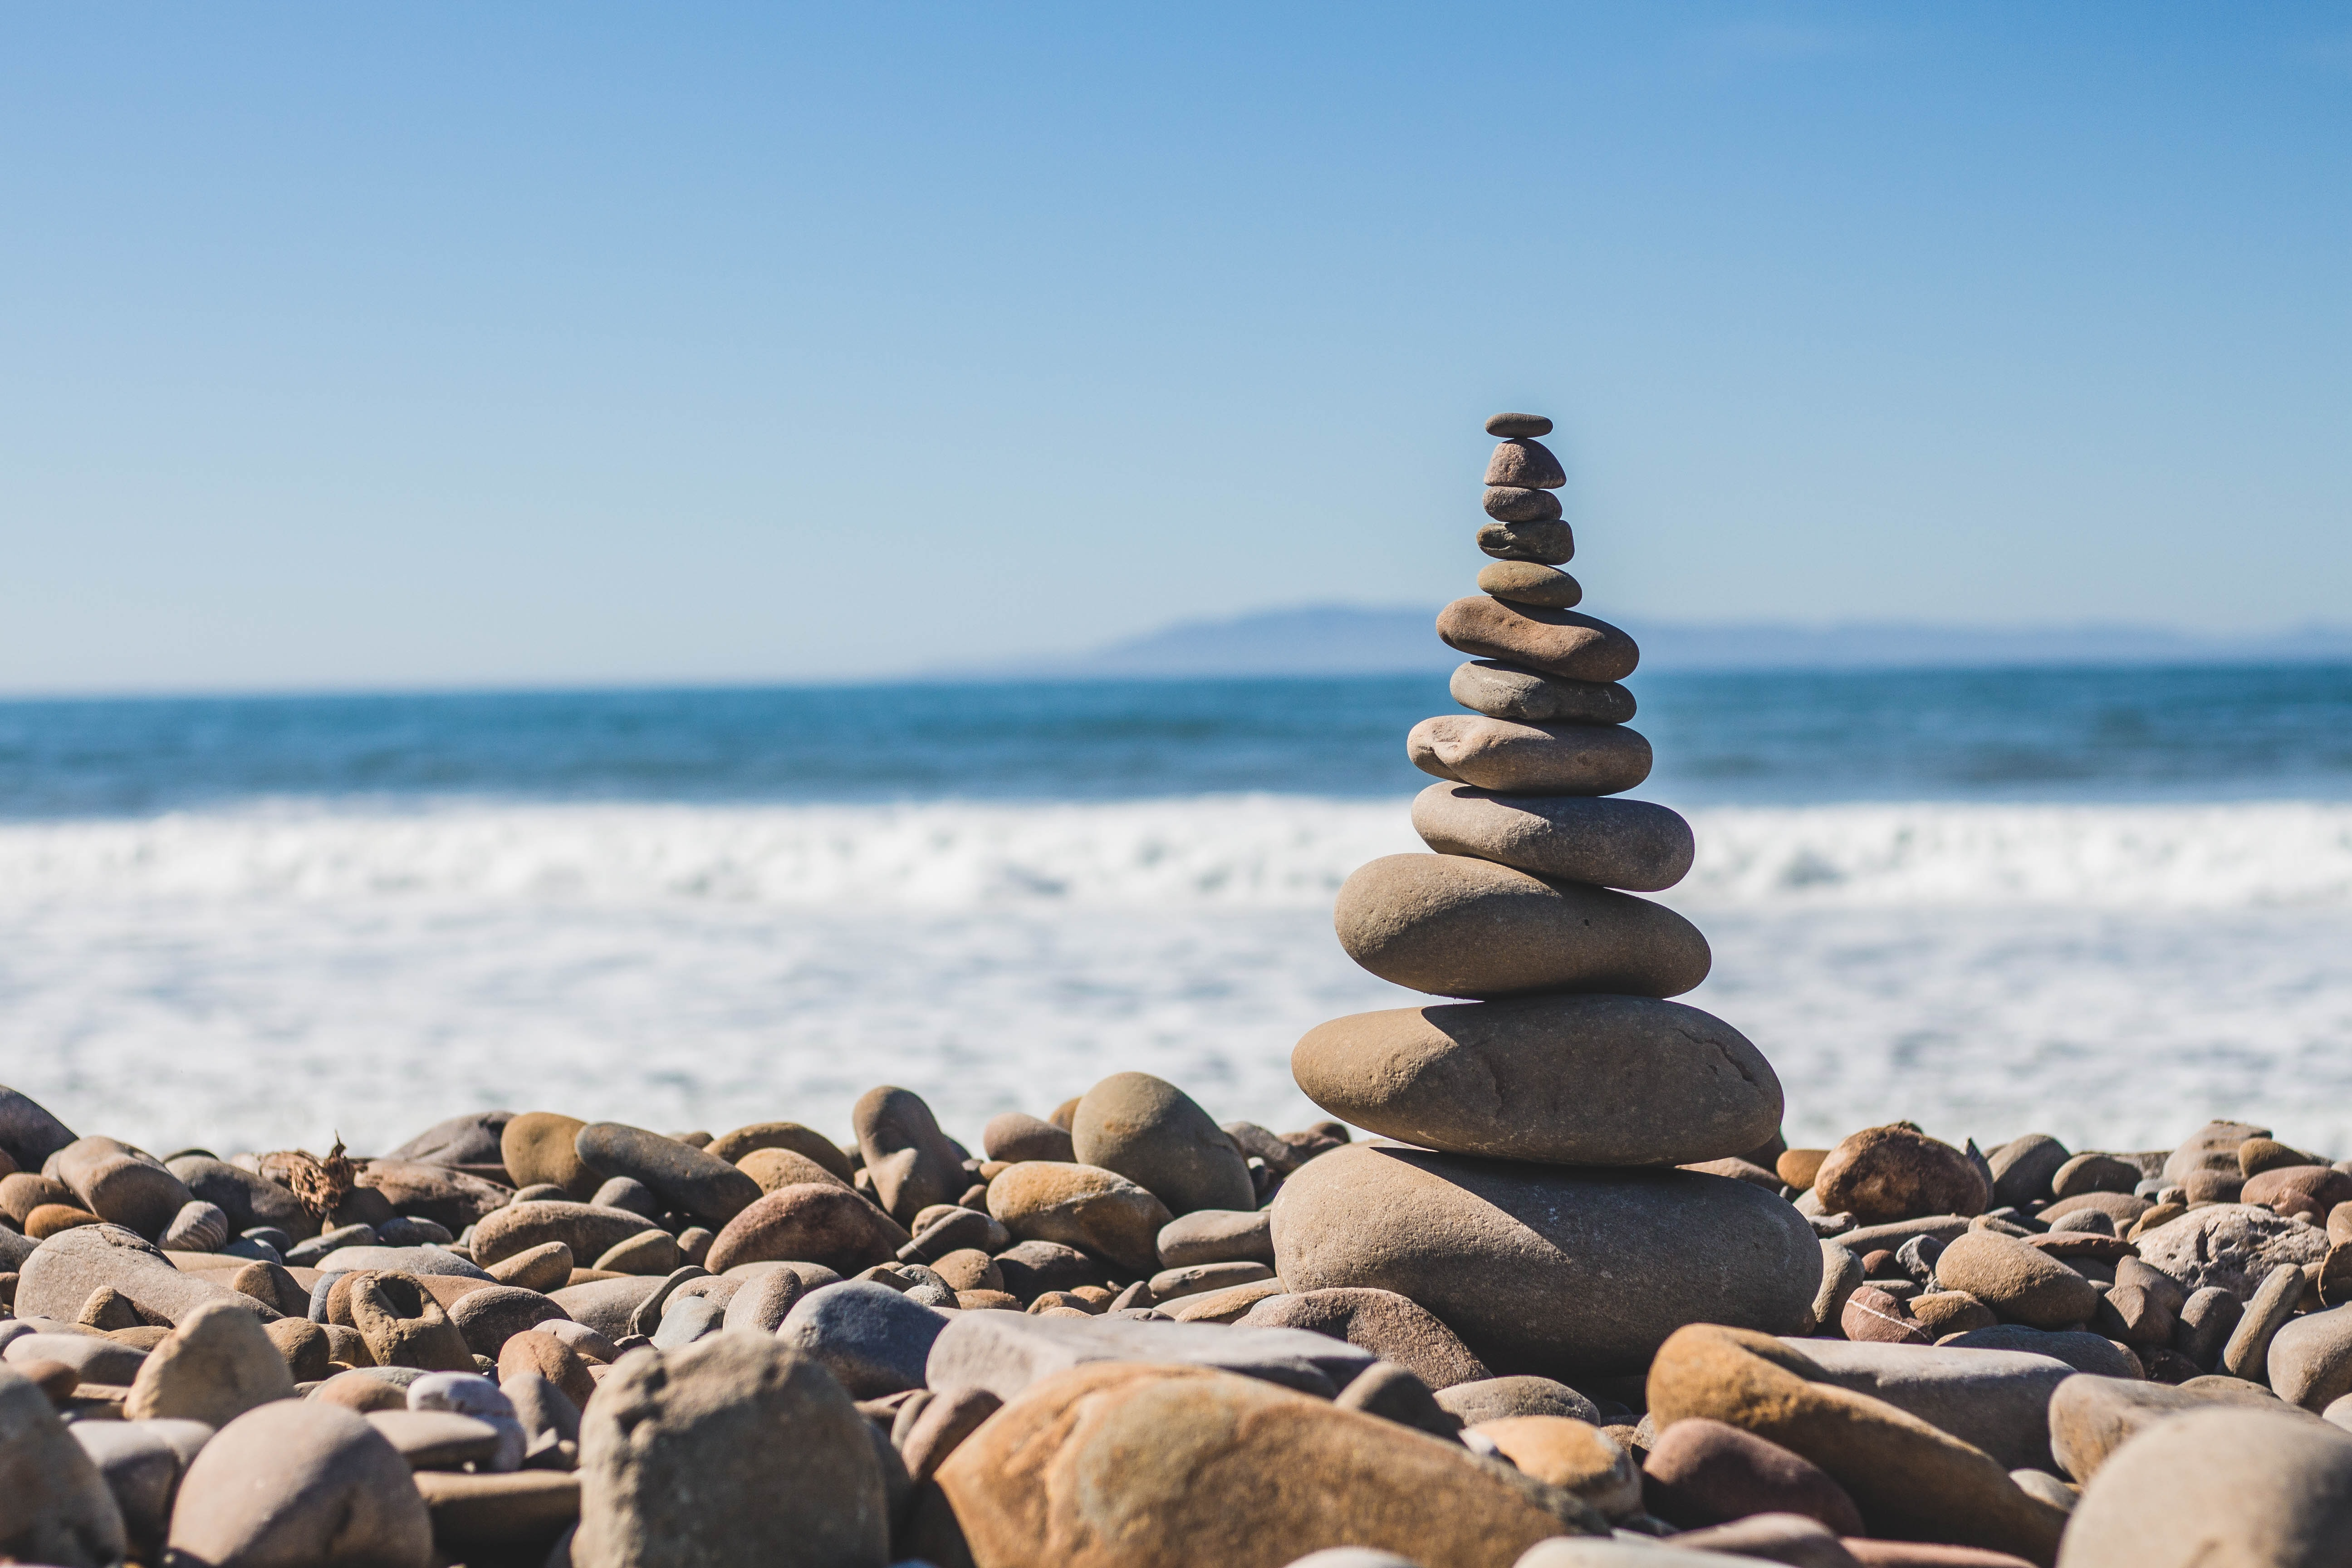 Stone balancing with pebble tower on the Ventura rocky beach